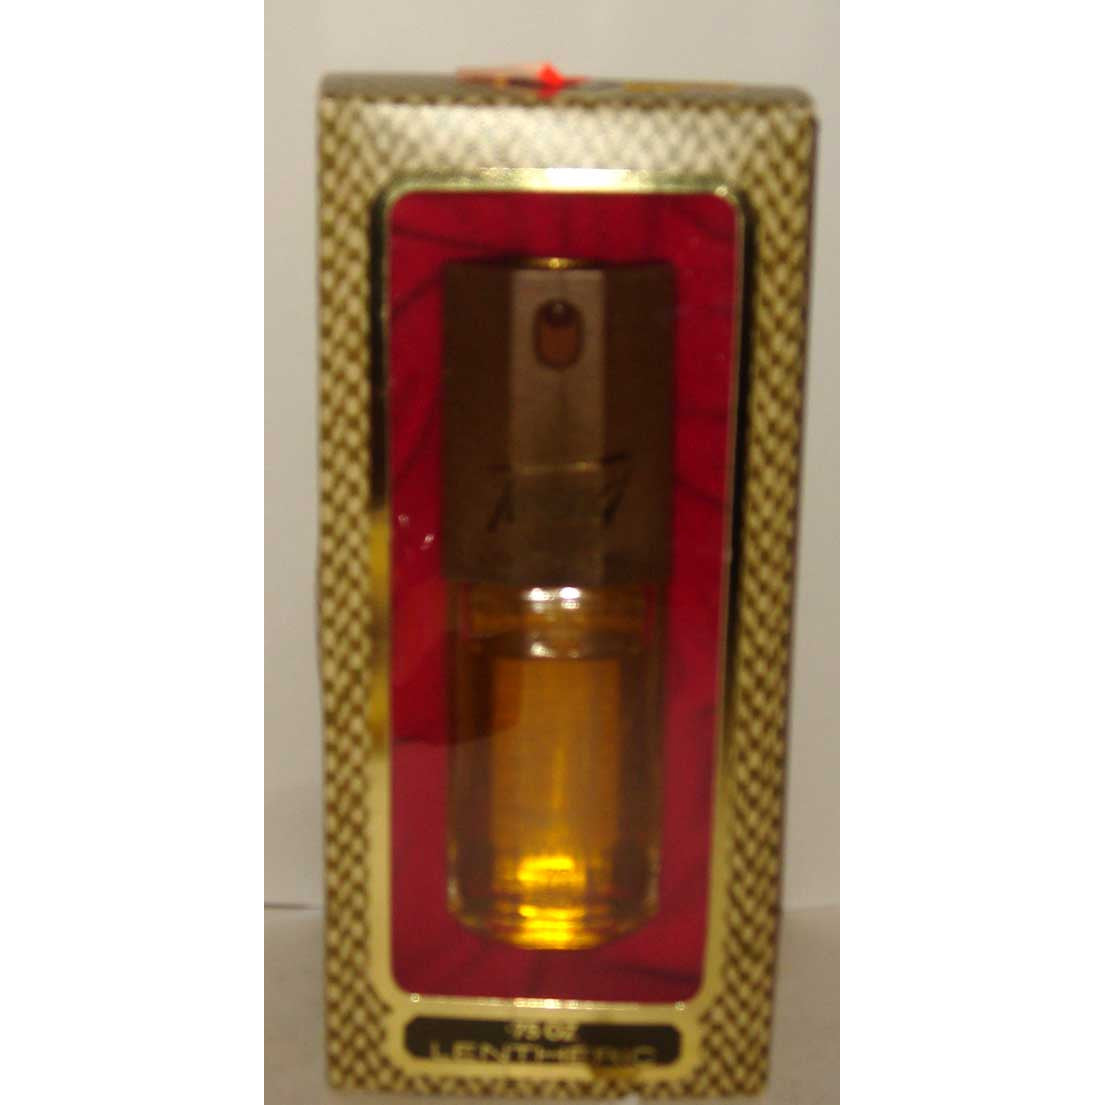 Vintage Lentheric Tweed Parfum de Toilette Spray